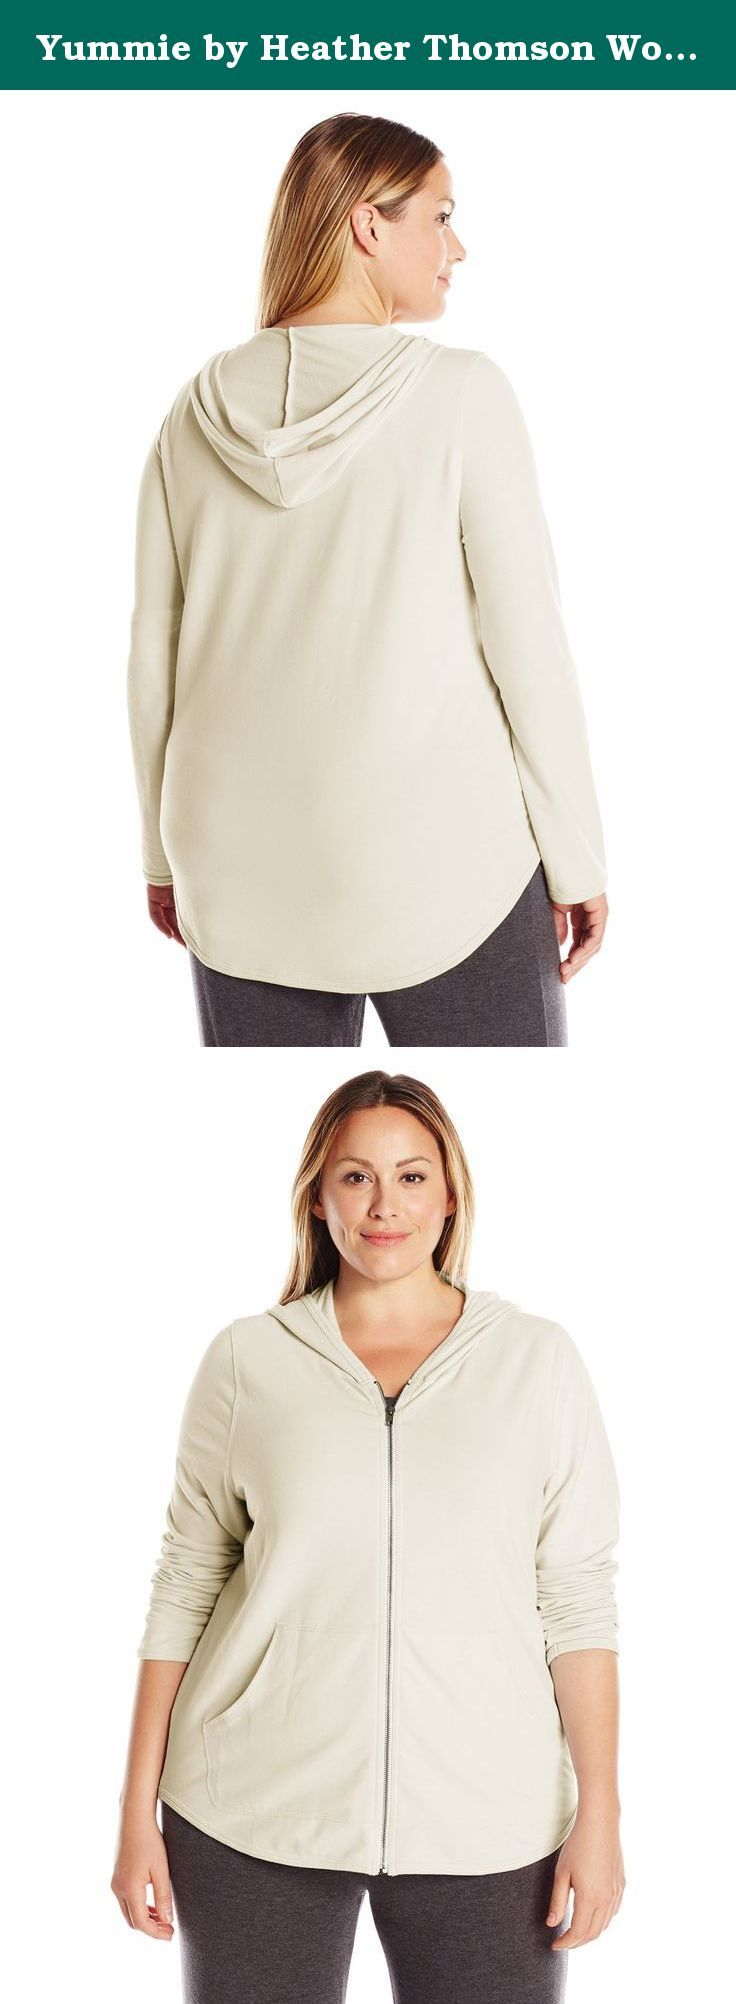 Yummie by Heather Thomson Women's Plus-Size Baby French Terry Zip Up Hoodie, Cream, 1X. Our soft baby French terry zip up hoodie is the perfect combination of style and comfort. Great as a layer or in place of a jacket, the off-duty vibe of this hoodie makes it a great choice for lounging around the house or for pairing with jeans.